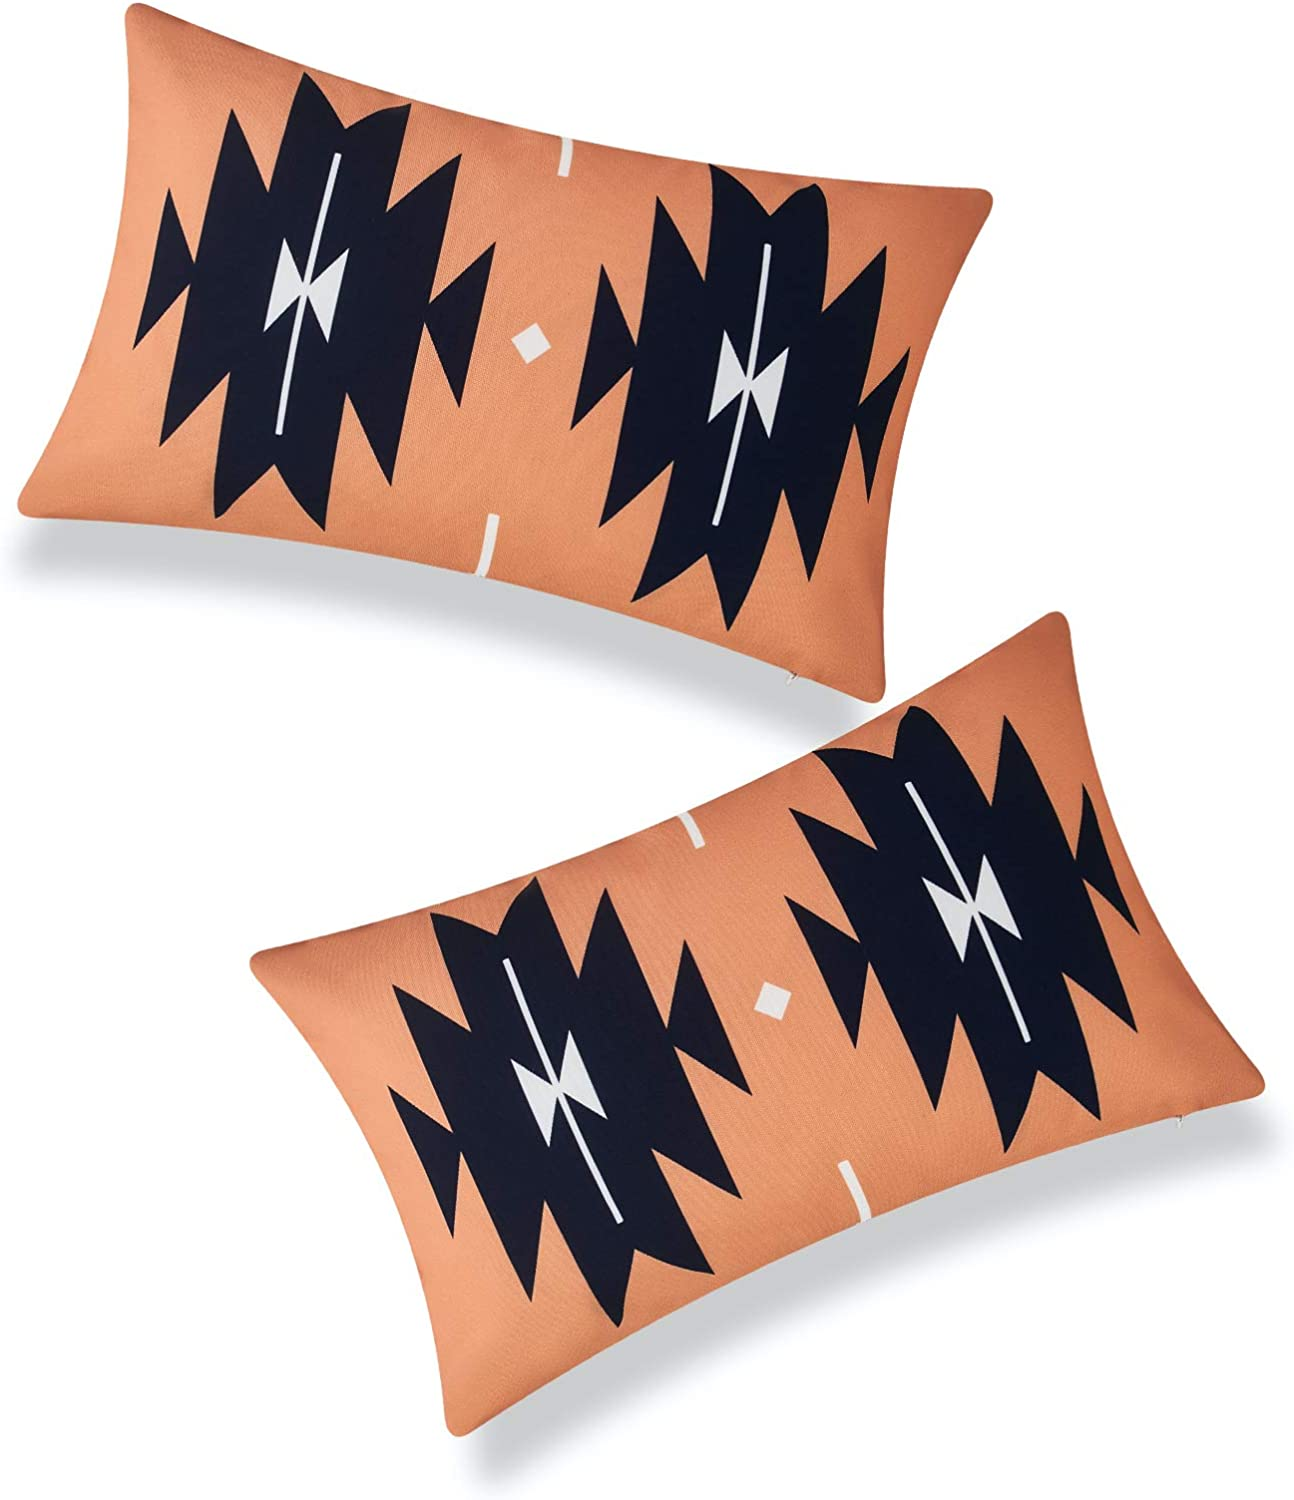 Hofdeco Modern Boho Patio Indoor Outdoor Lumbar Pillow Cover ONLY for Backyard, Couch, Sofa, Navy Blue Orange Aztec Triangles, 12